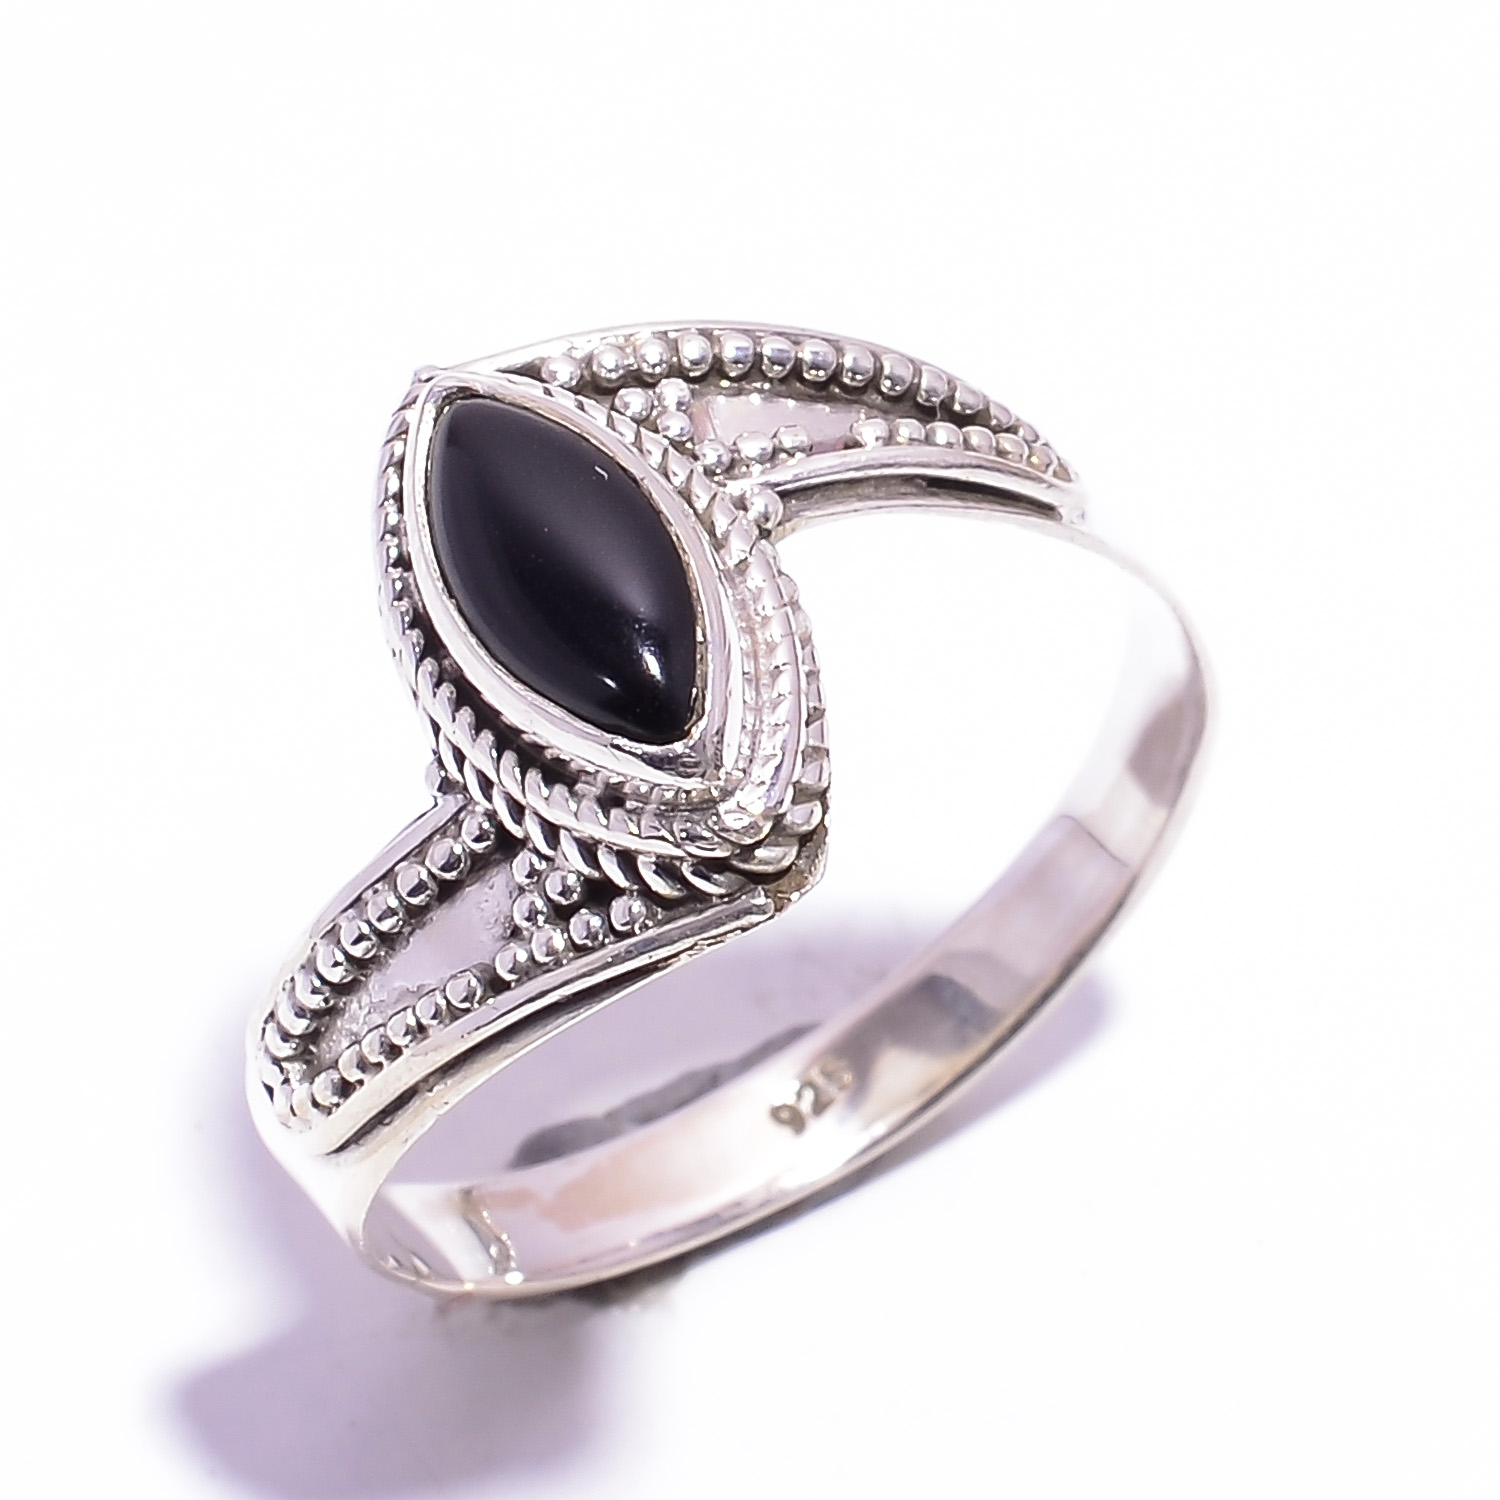 Black Onyx Gemstone 925 Sterling Silver Ring Size US 11